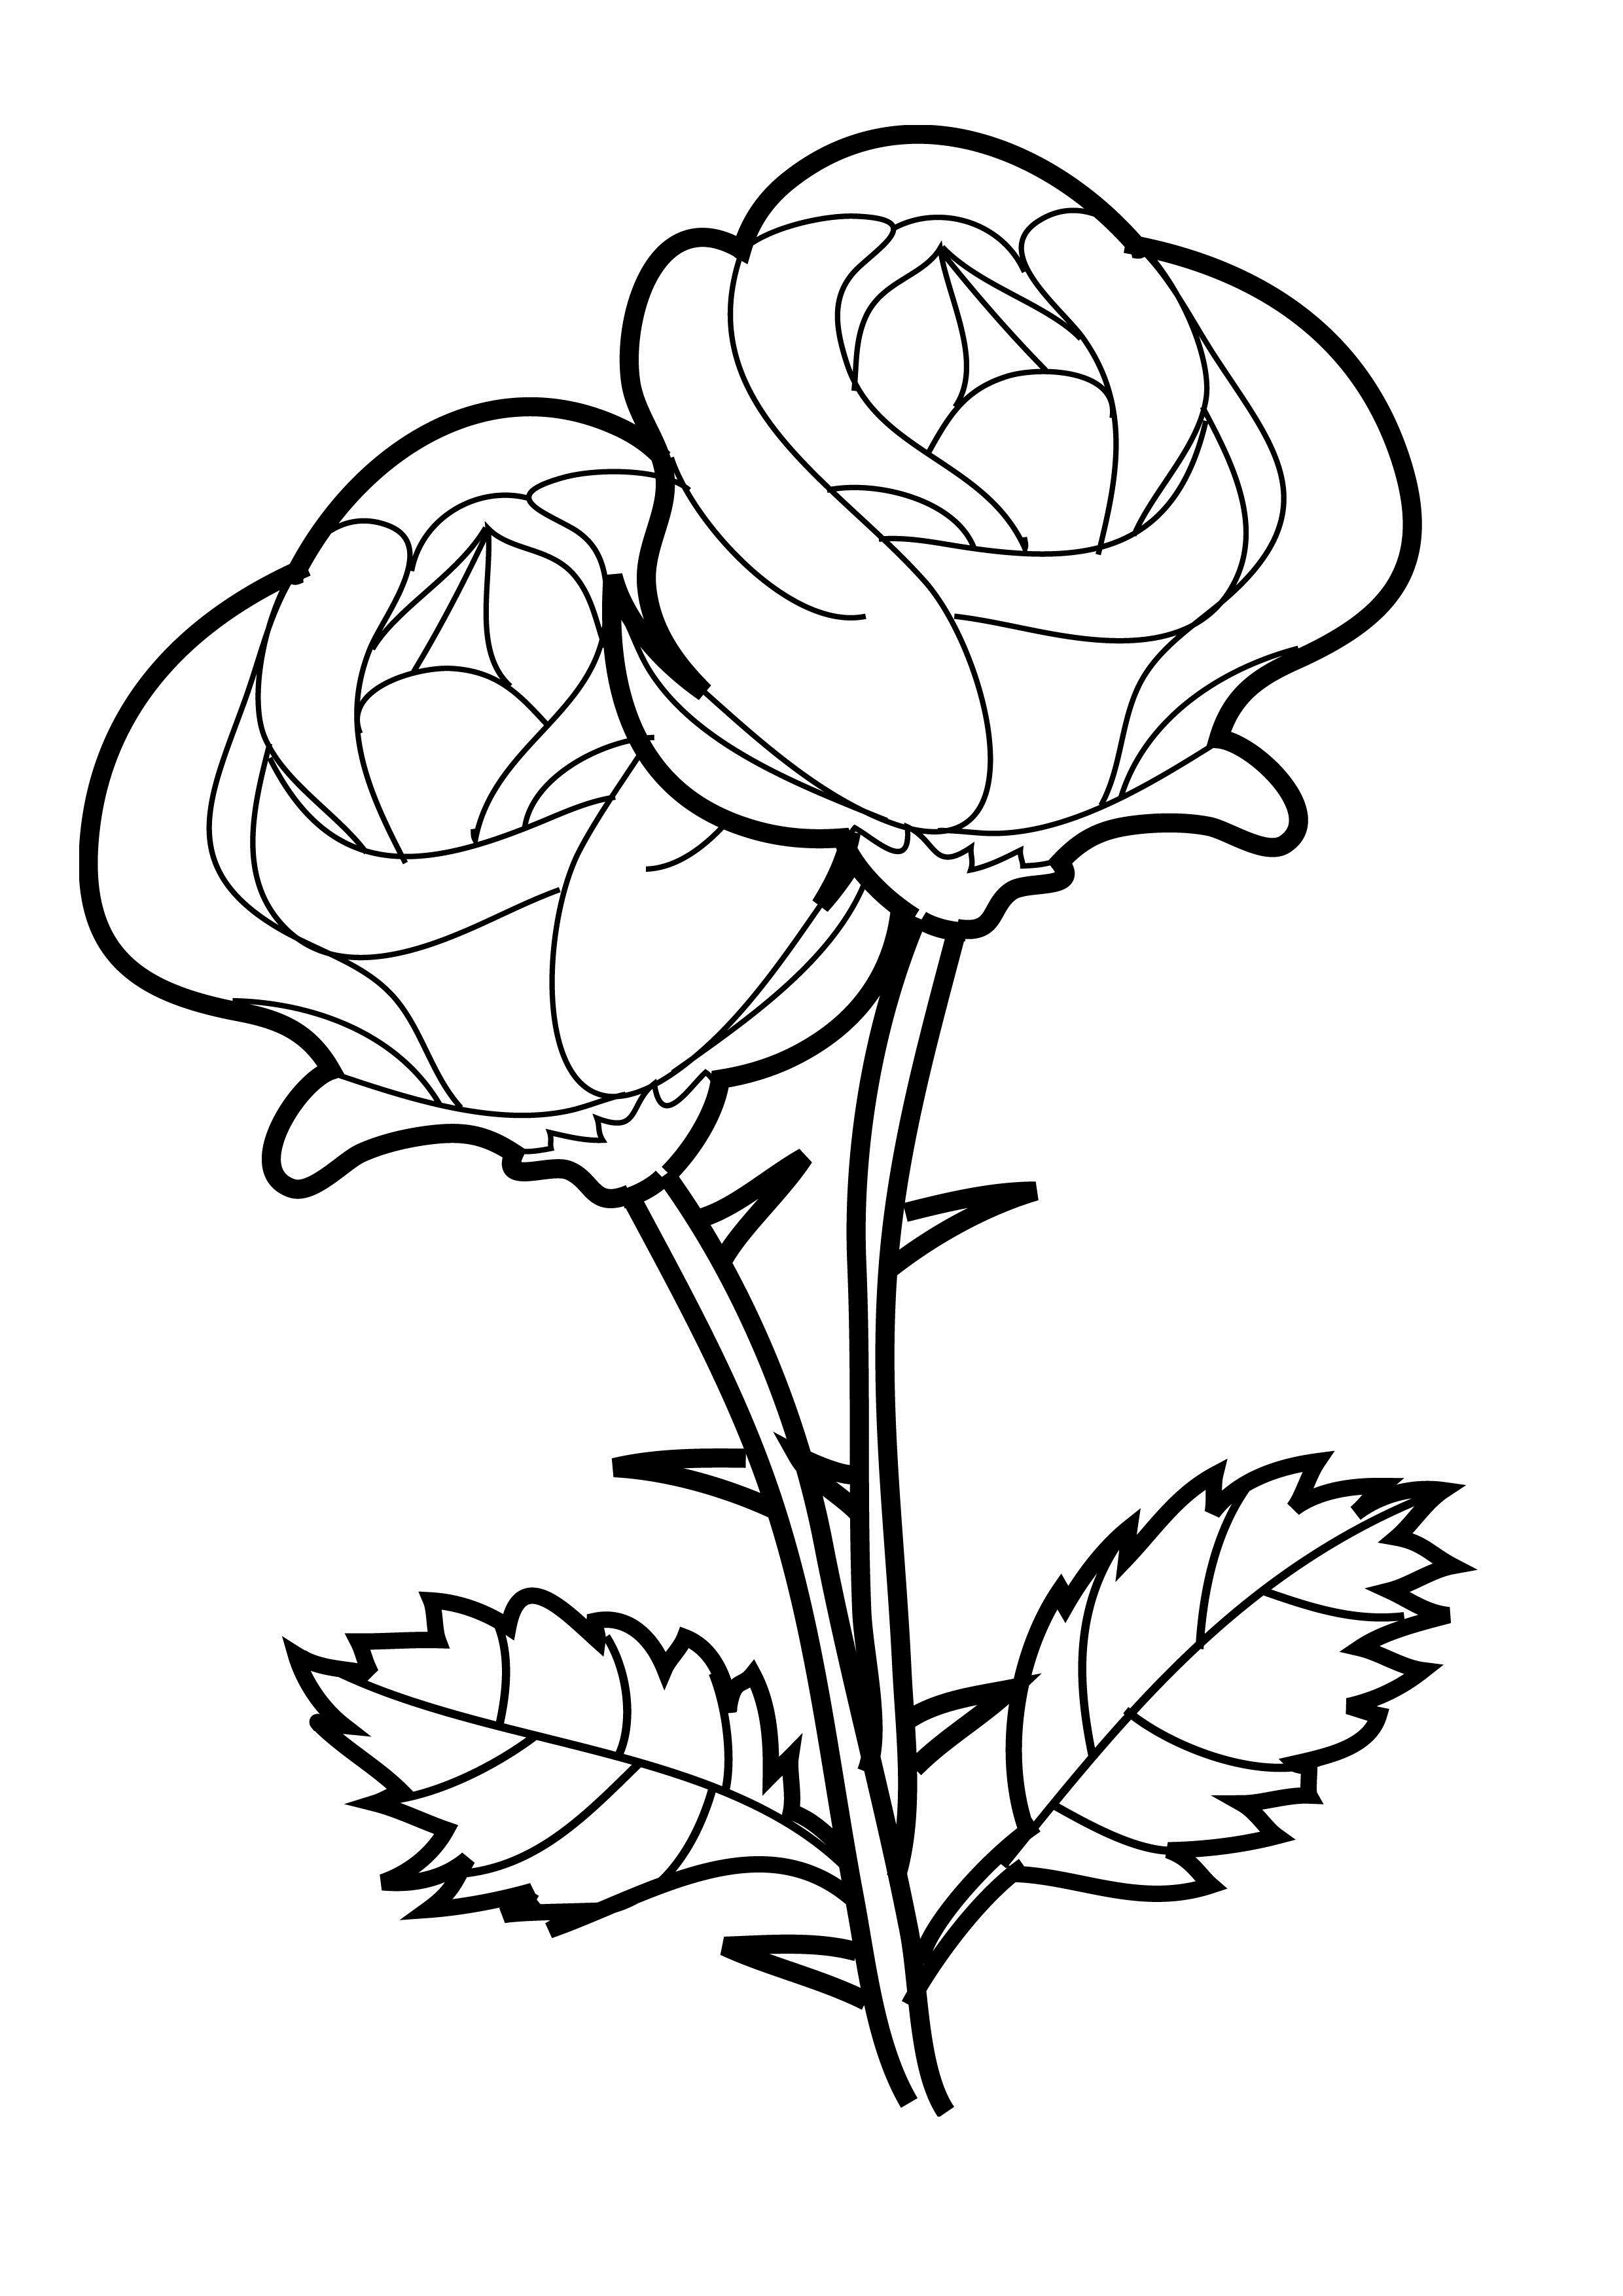 rose coloring book free printable roses coloring pages for kids coloring book rose